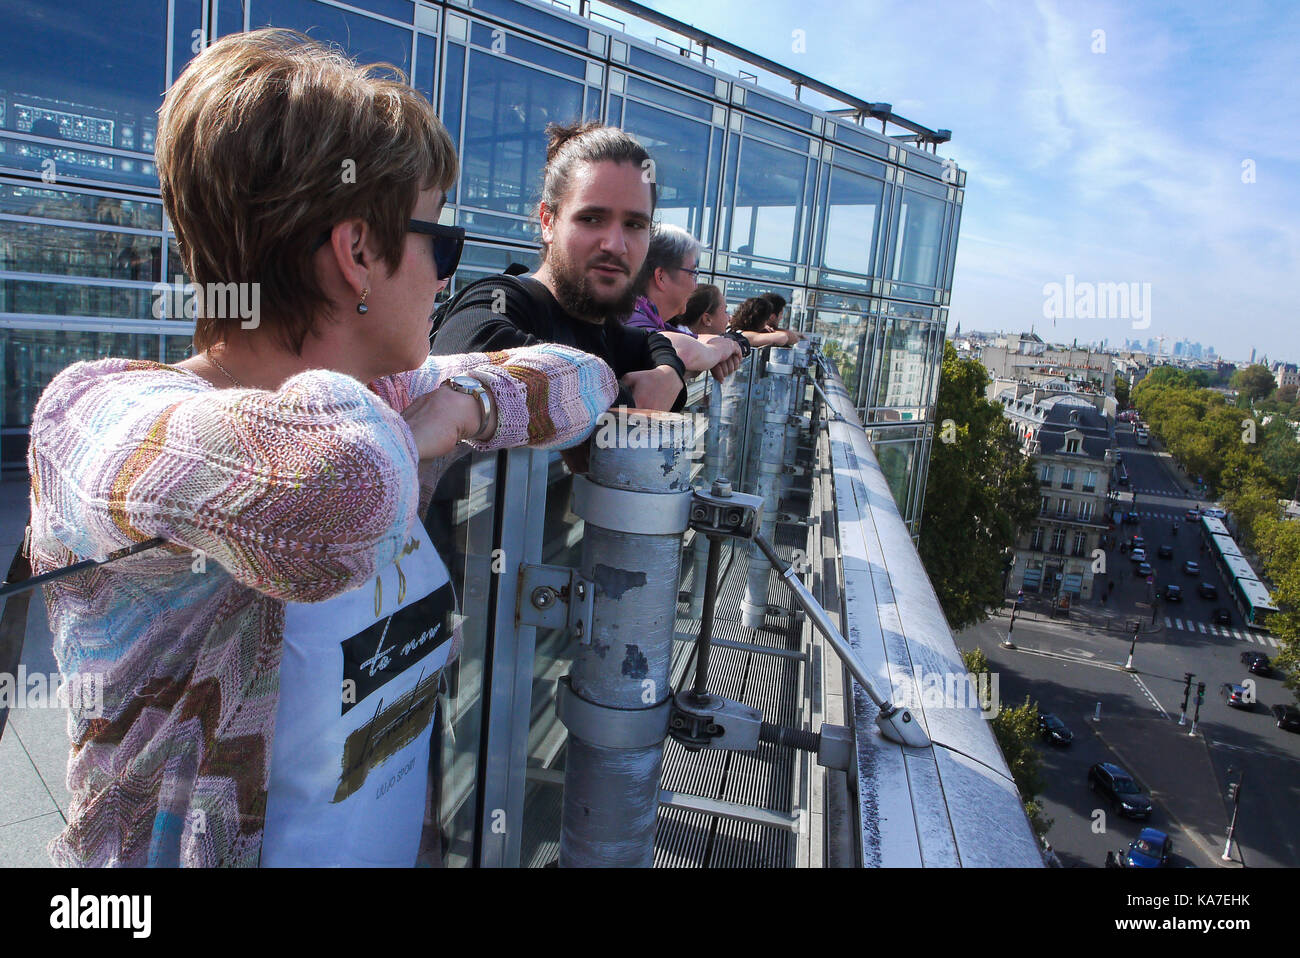 A tour at IMA, Institute of Arab World, Paris, France - Stock Image